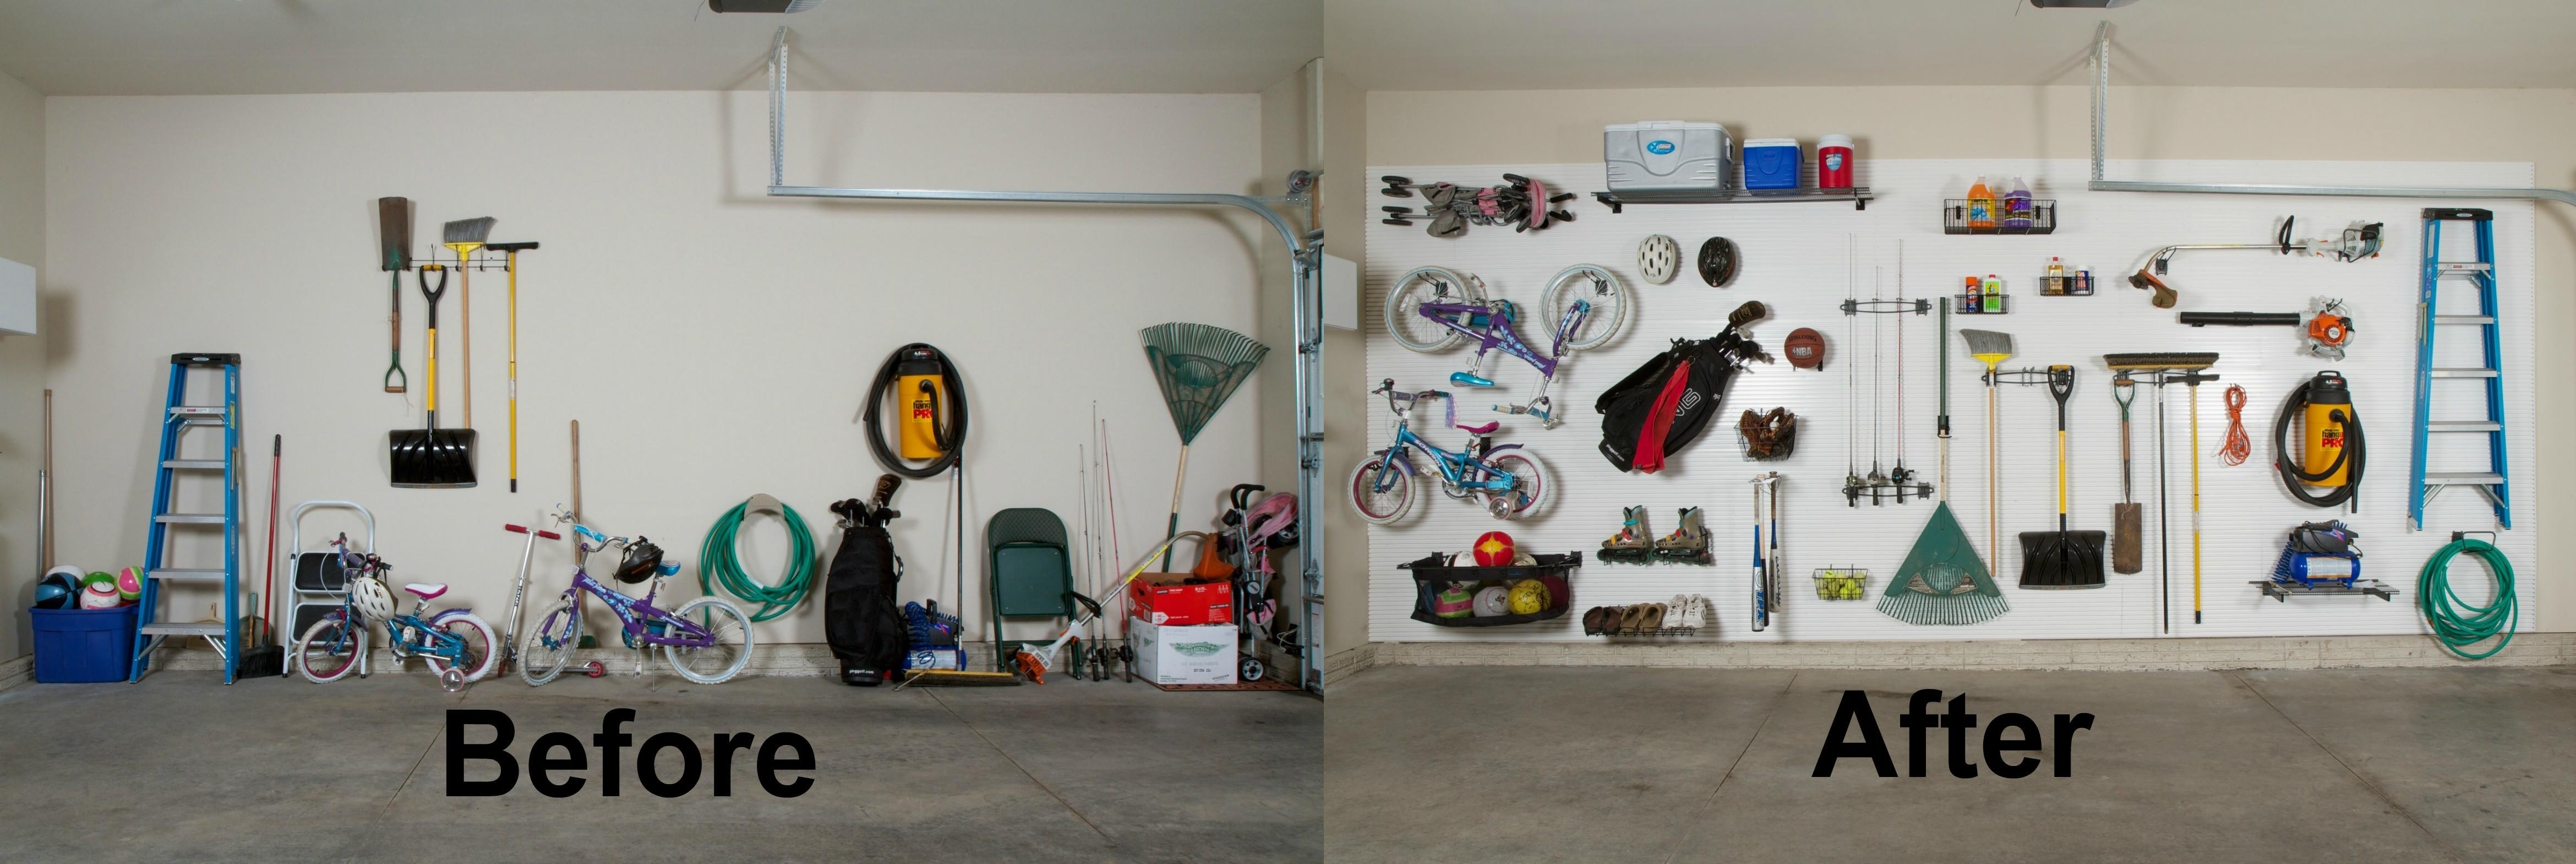 Before After Diy Garage Organization Ideas